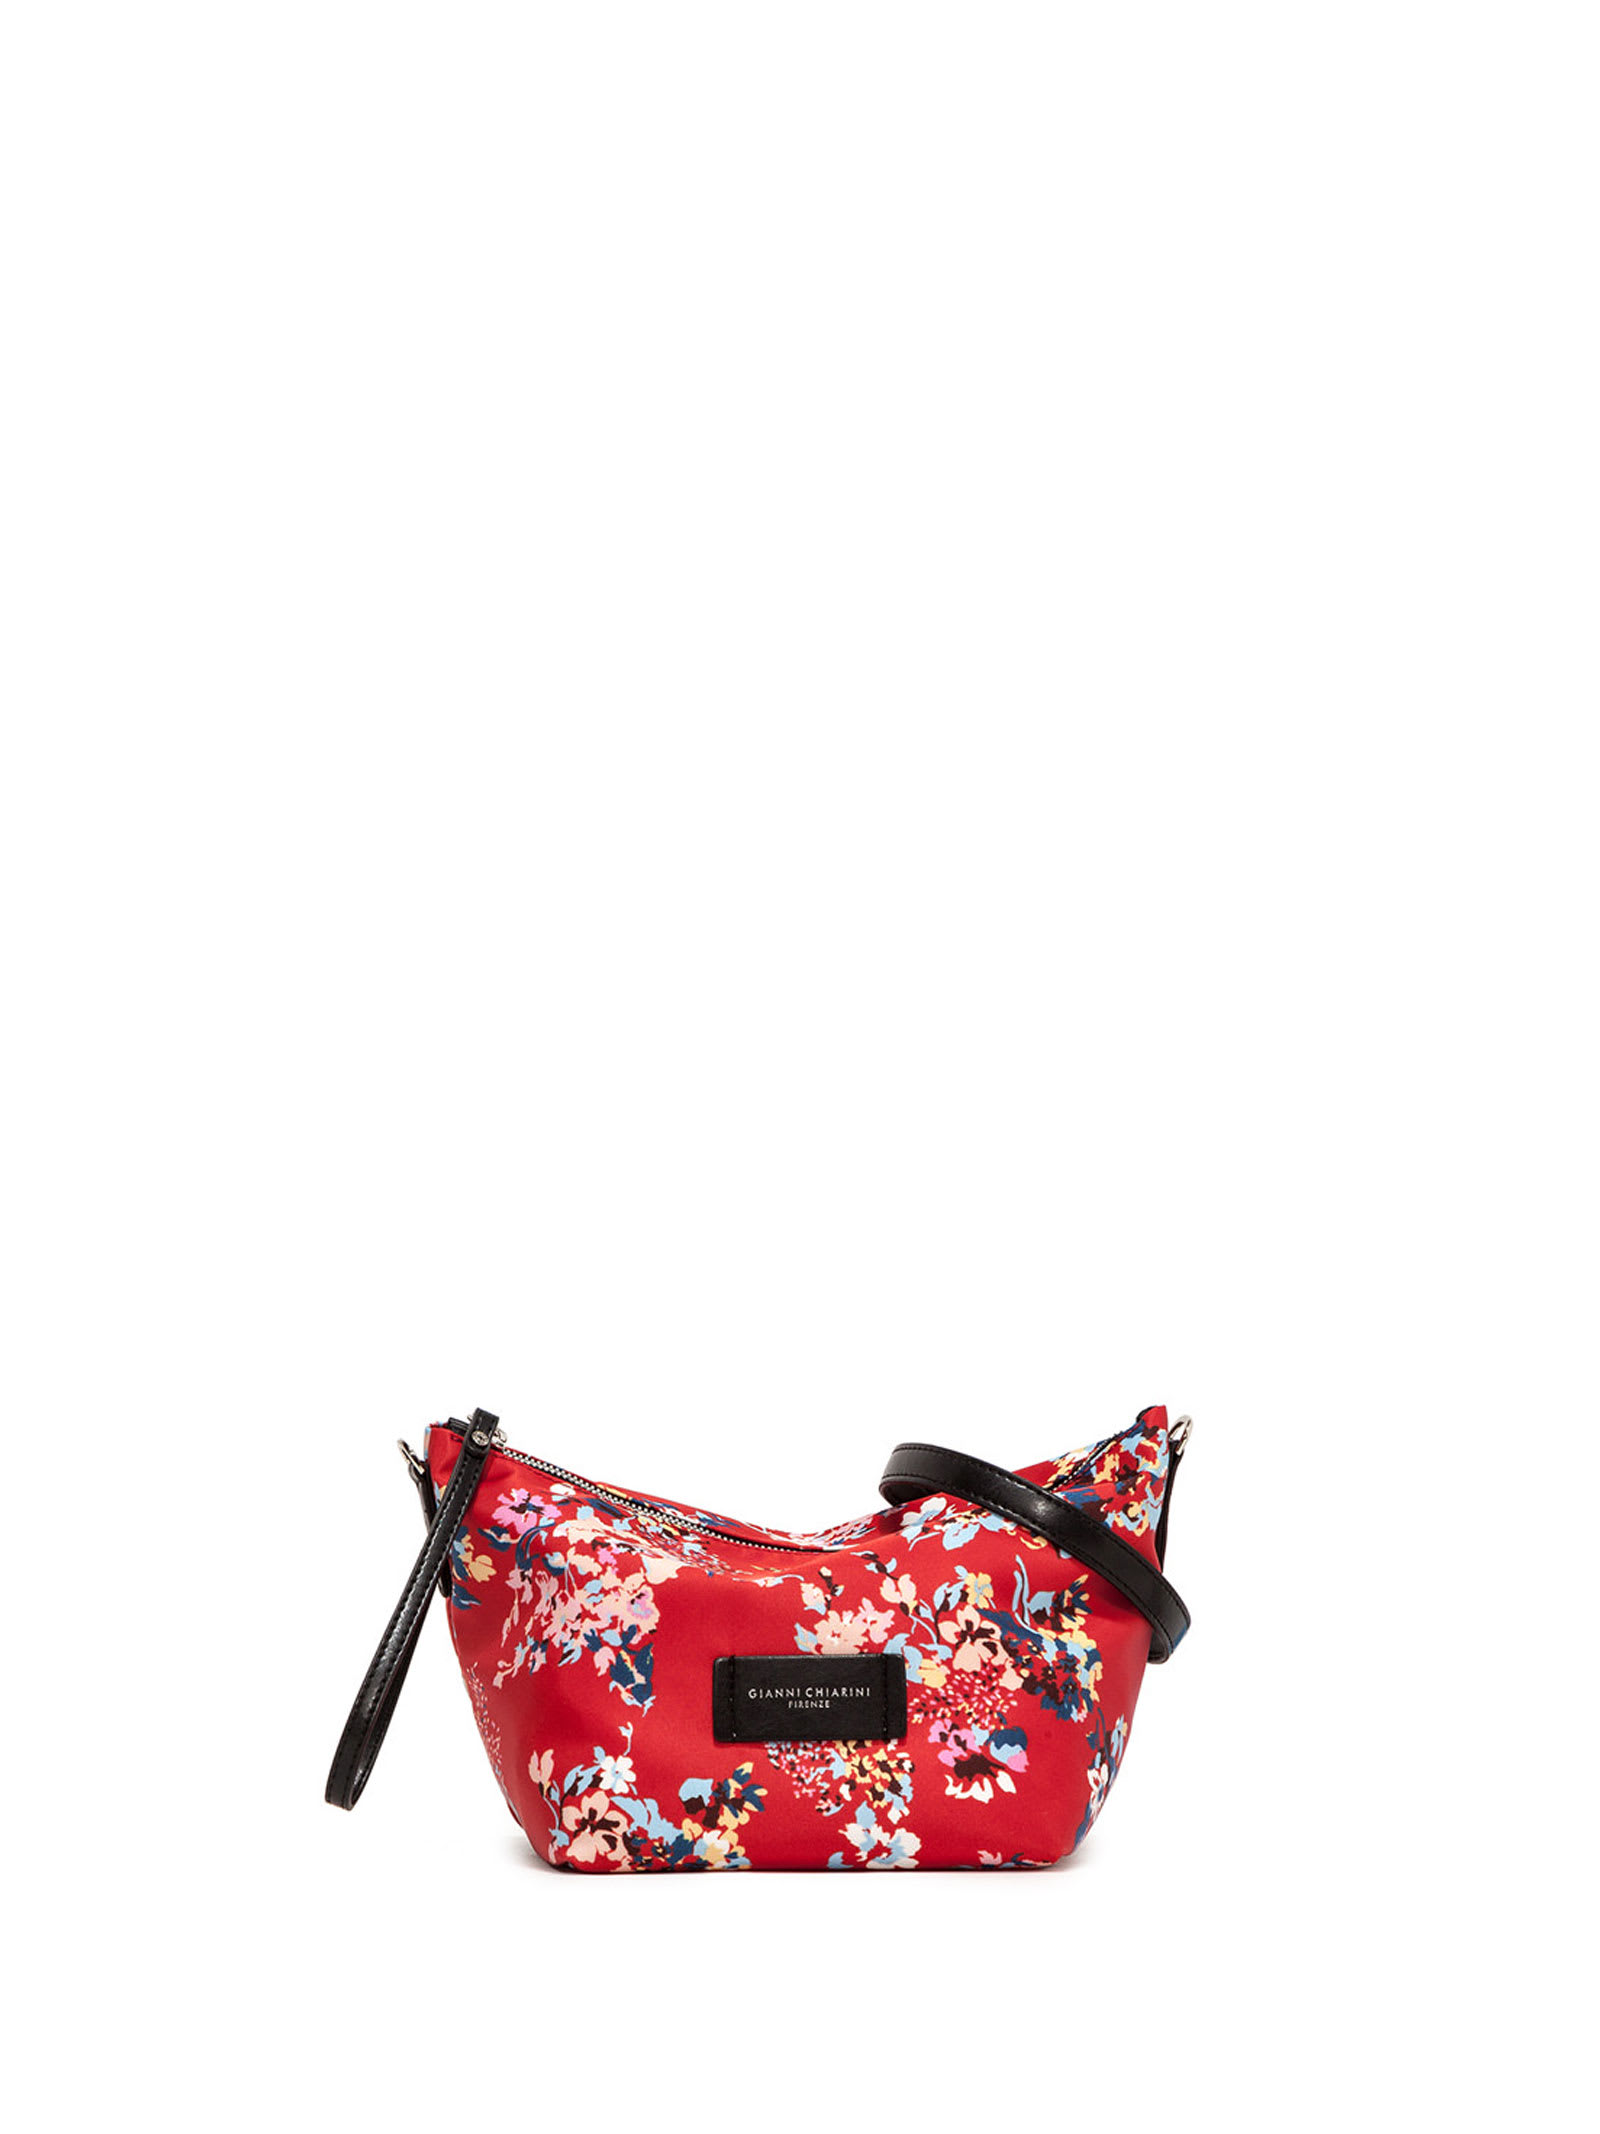 Pouch With Floral Pattern